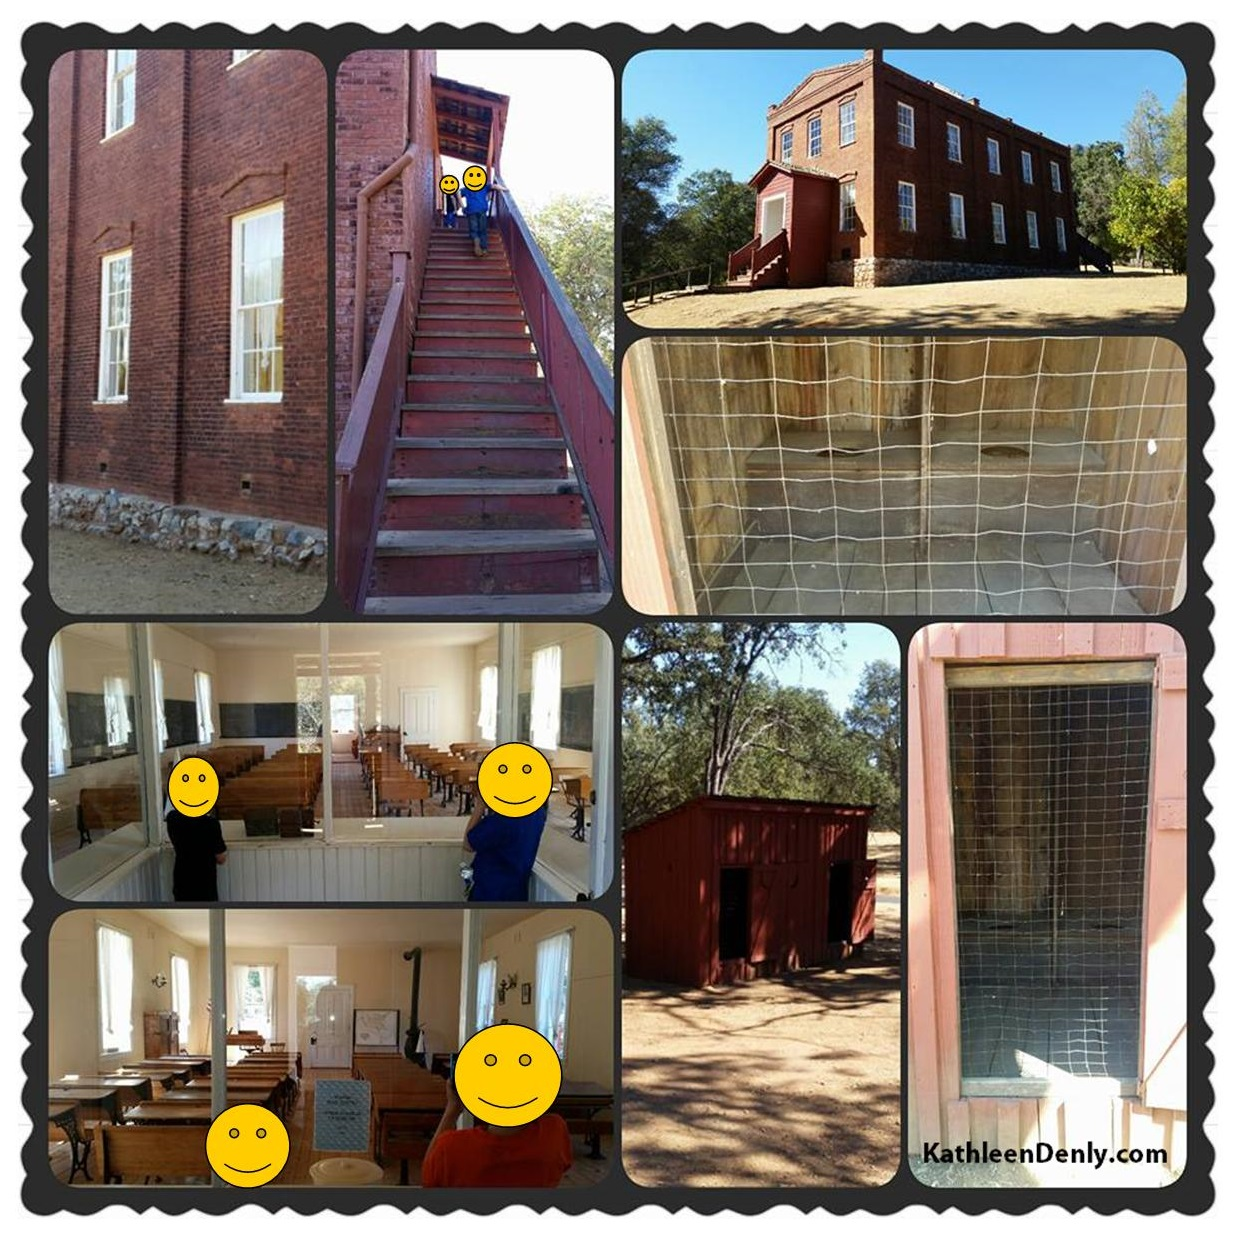 Photo collage of the historic schoolhouse in Columbia, Ca and its accompanying outhouse. Photos taken by Kathleen Denly